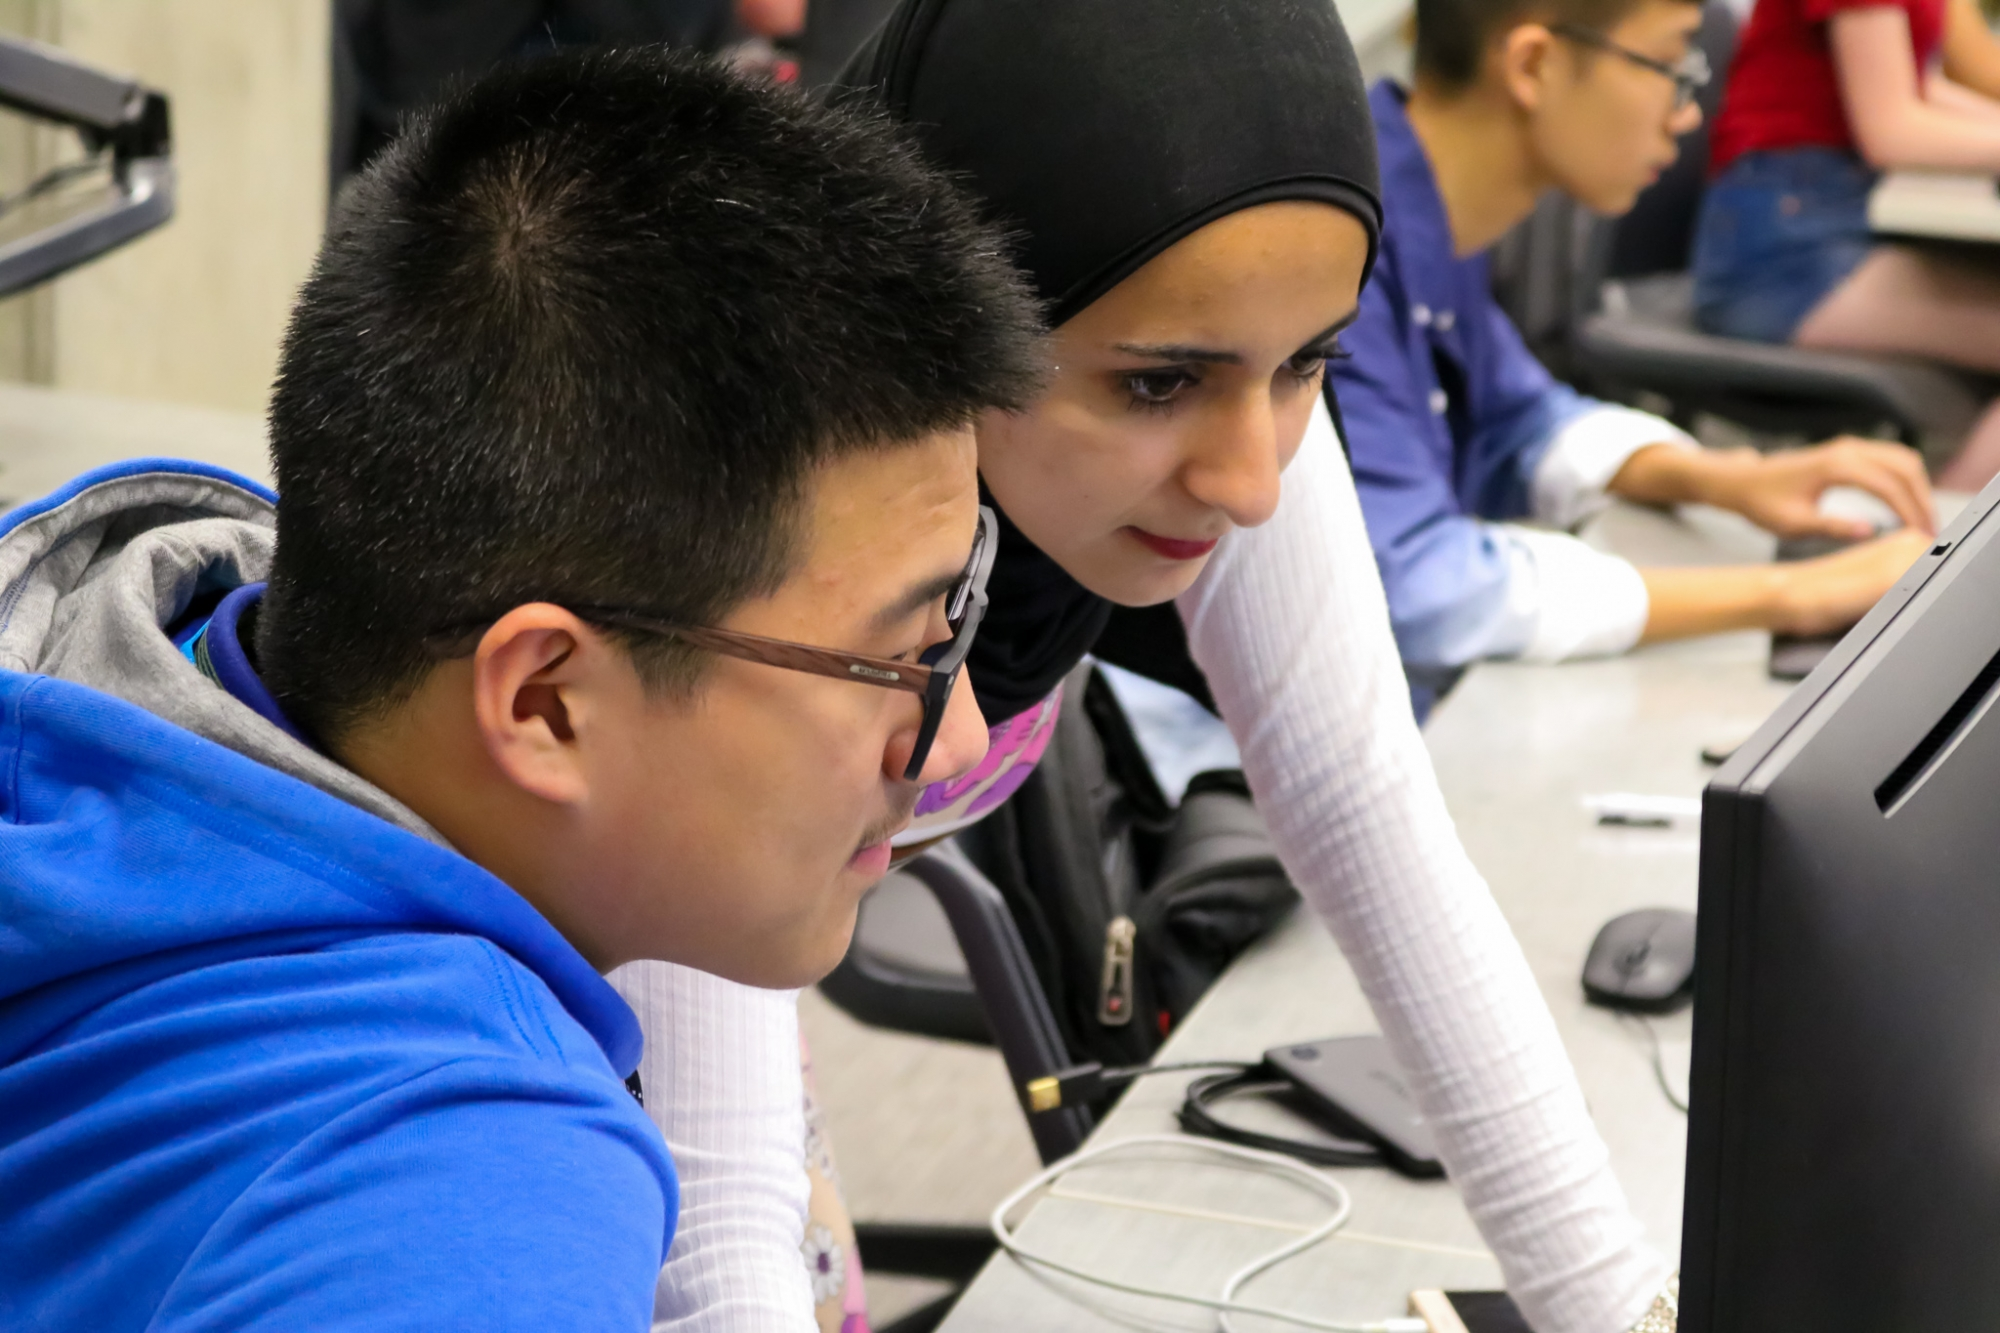 Student and Course Assistant looking over a computer